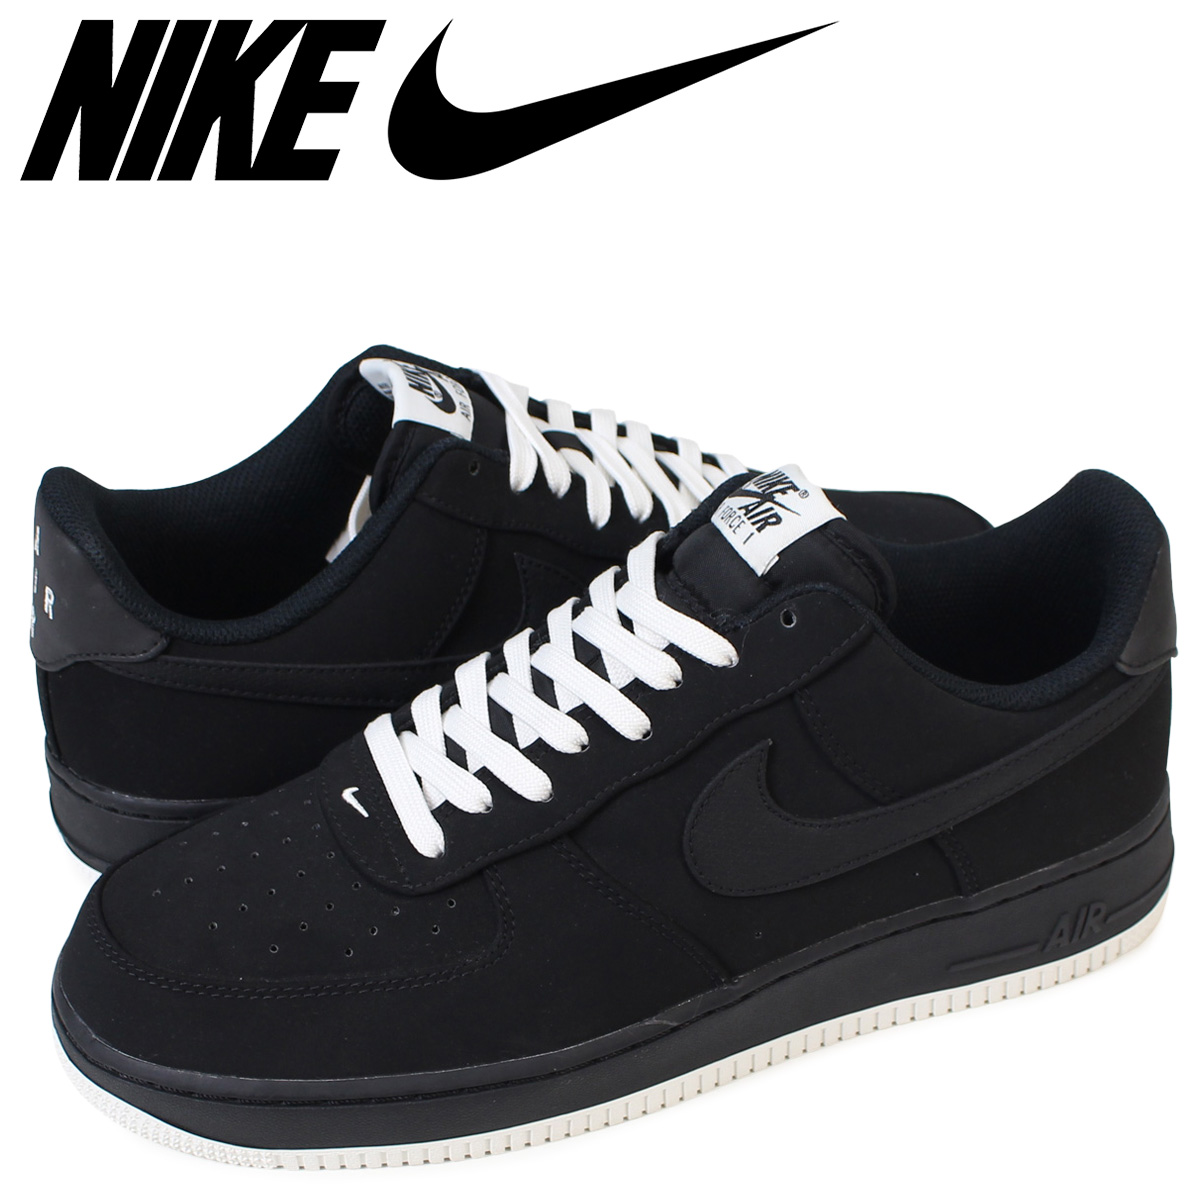 ALLSPORTS  NIKE Nike air force 1 sneakers AIR FORCE 1 SP 2016 FALL ... 45a50092c7